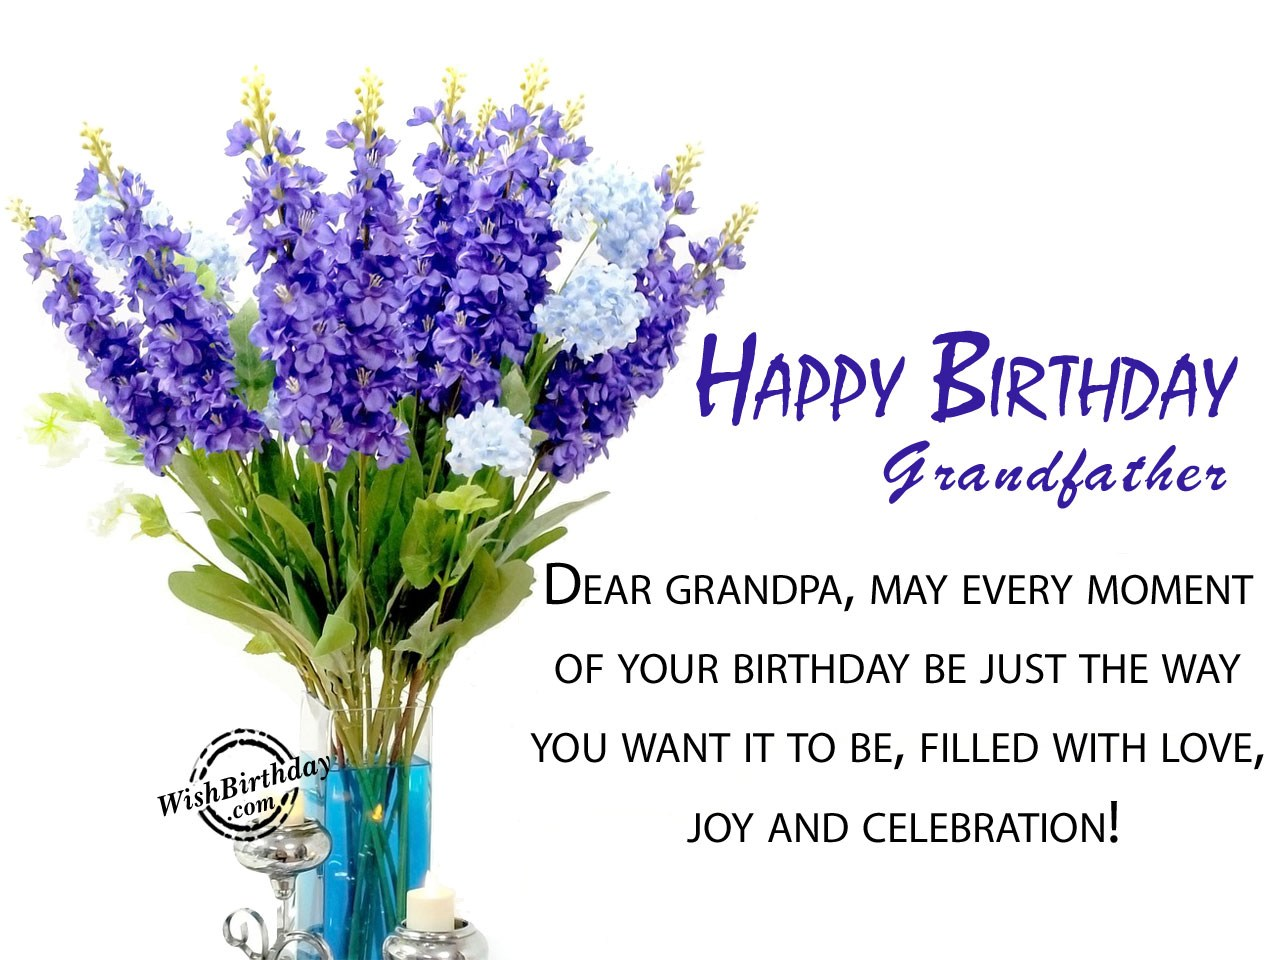 birthday wishes for grandfather  birthday images, pictures, Birthday card